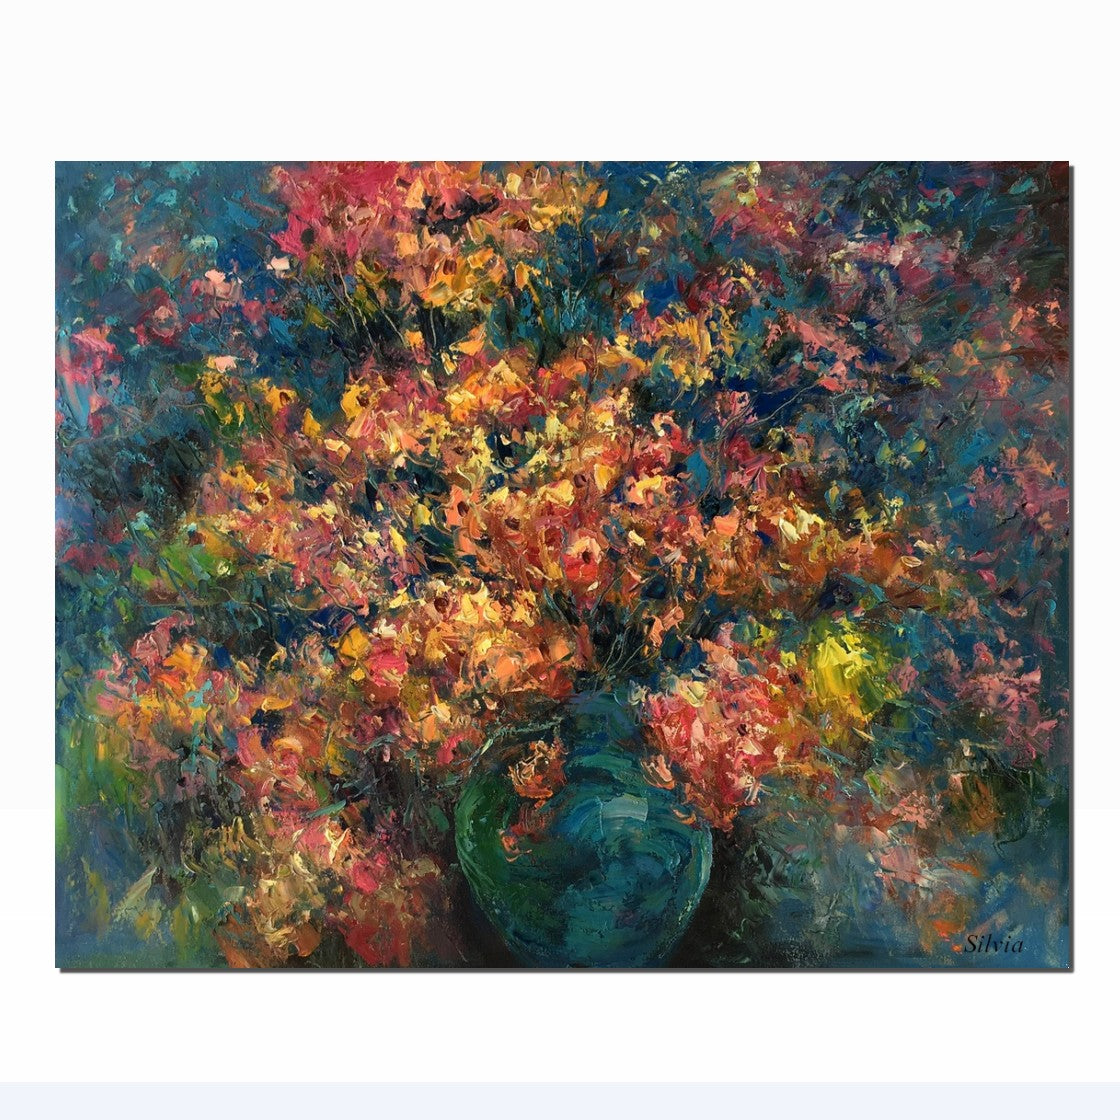 Canvas Art, Abstract Painting, Abstract Art, Large Art, Modern Wall Art, Large Abstract Painting, Flower Oil Painting, Painting On Canvas